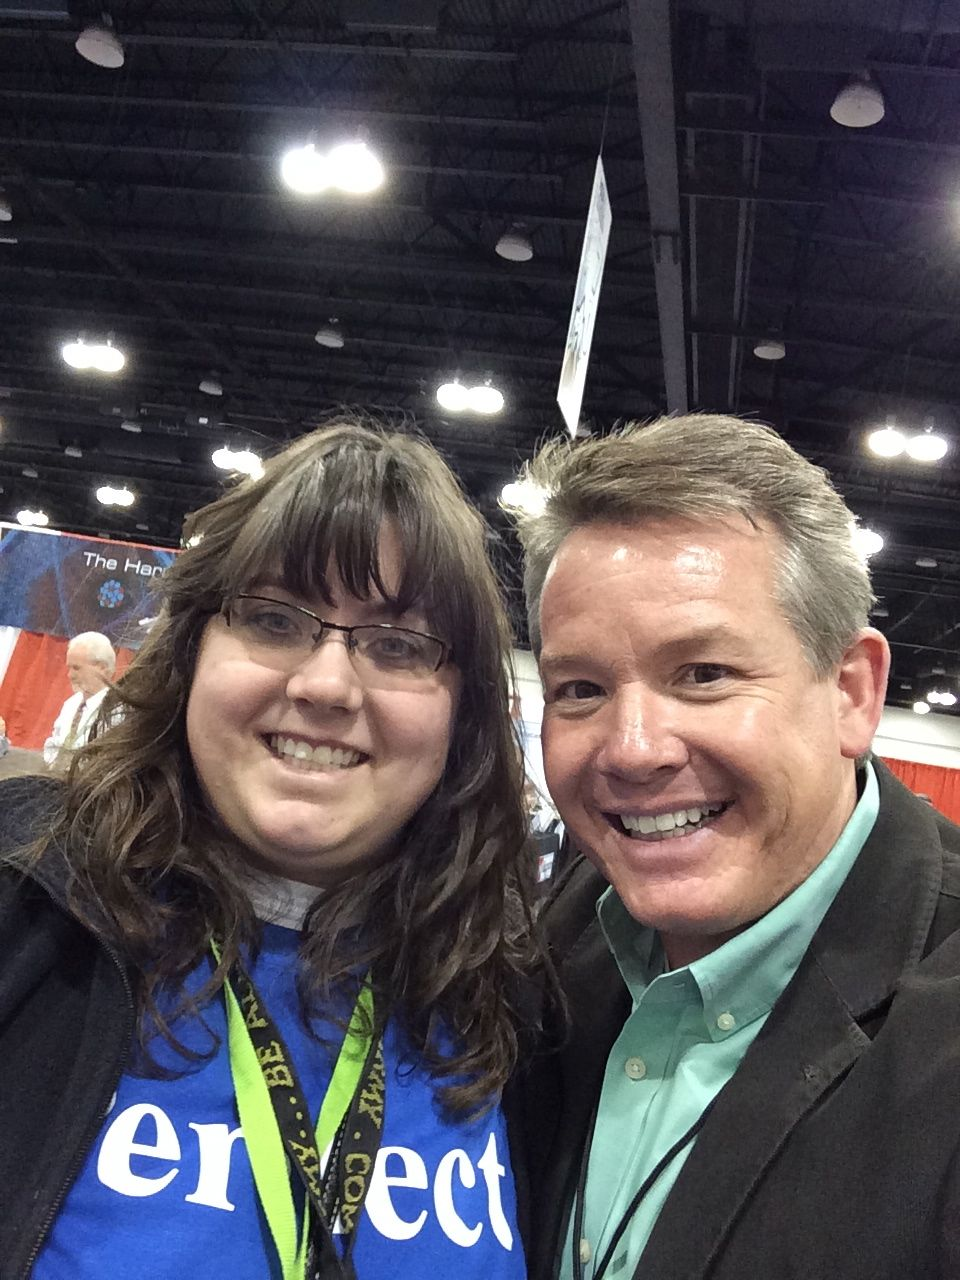 Share your #ScienceSelfie with us on Twitter. @SteveSpangler